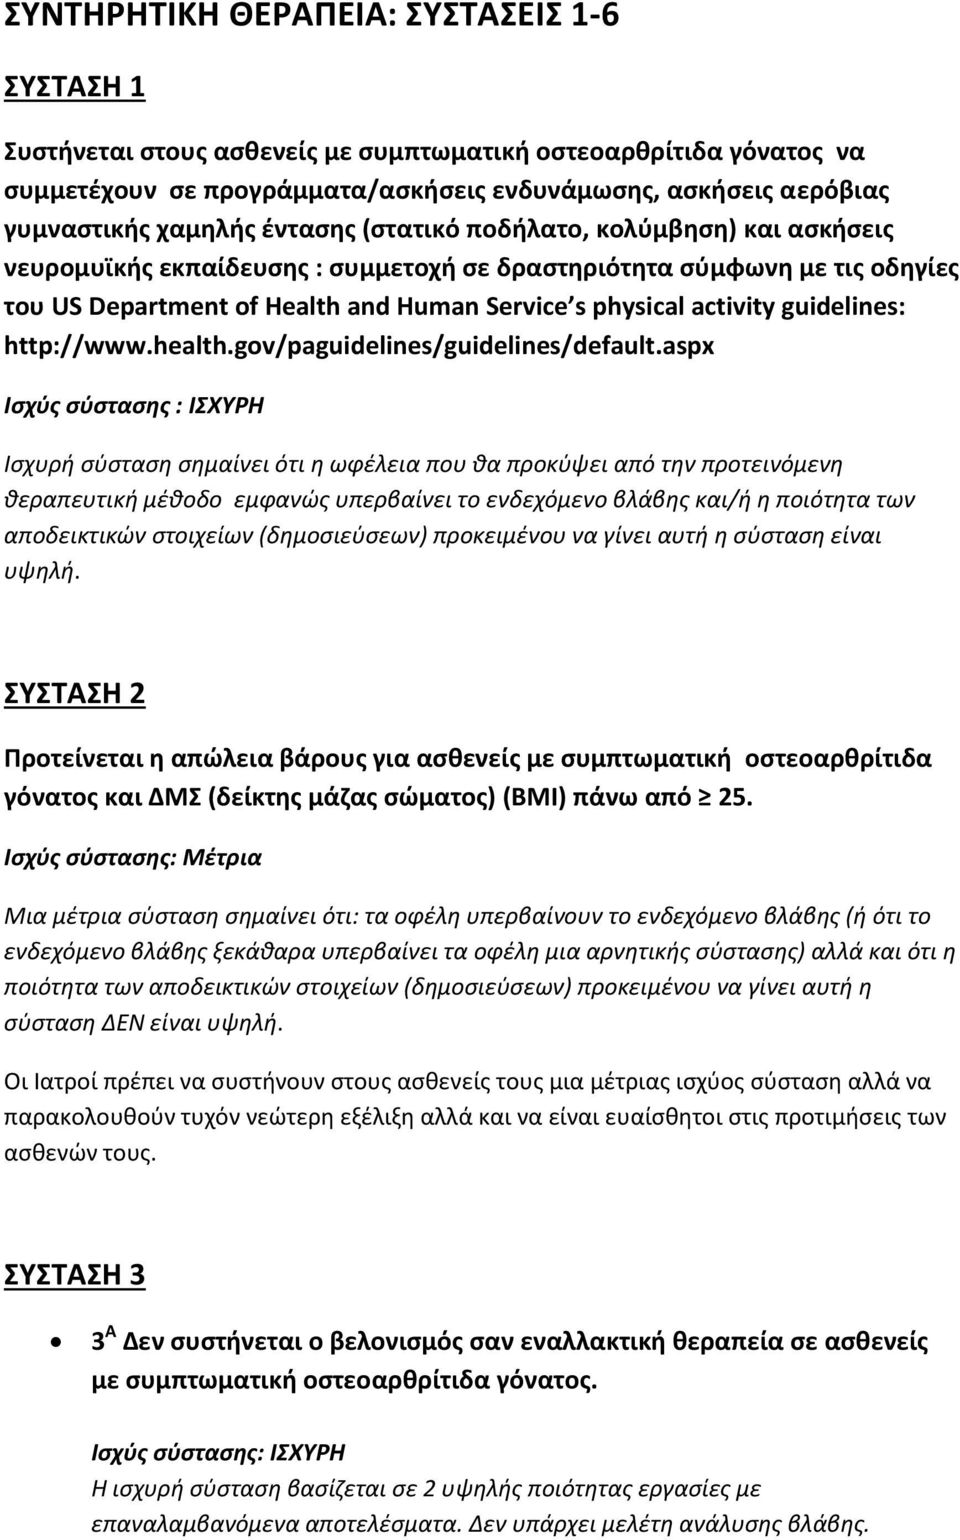 activity guidelines: http://www.health.gov/paguidelines/guidelines/default.